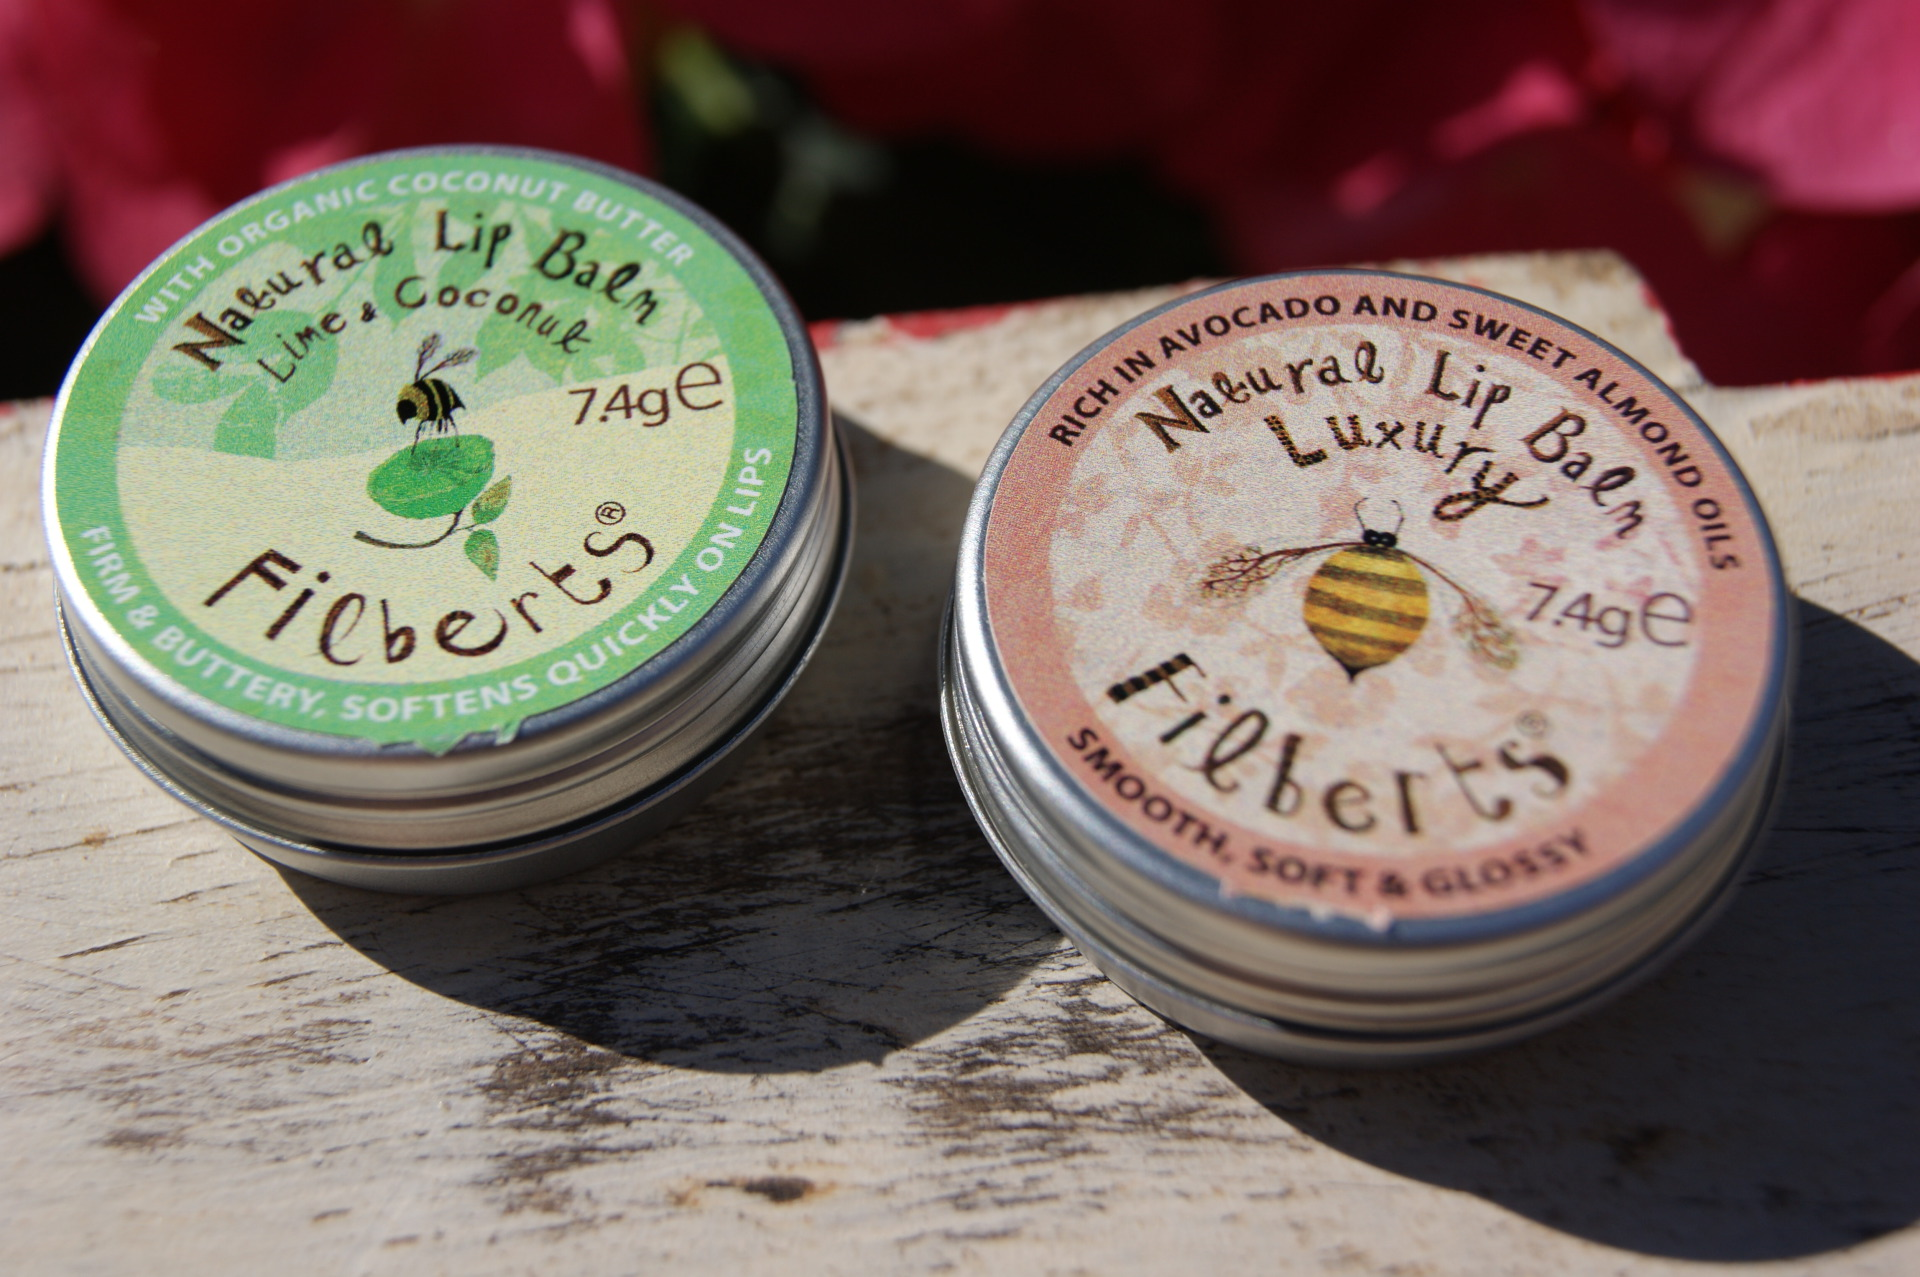 Filberts - Lip Balm Gift Set - Review